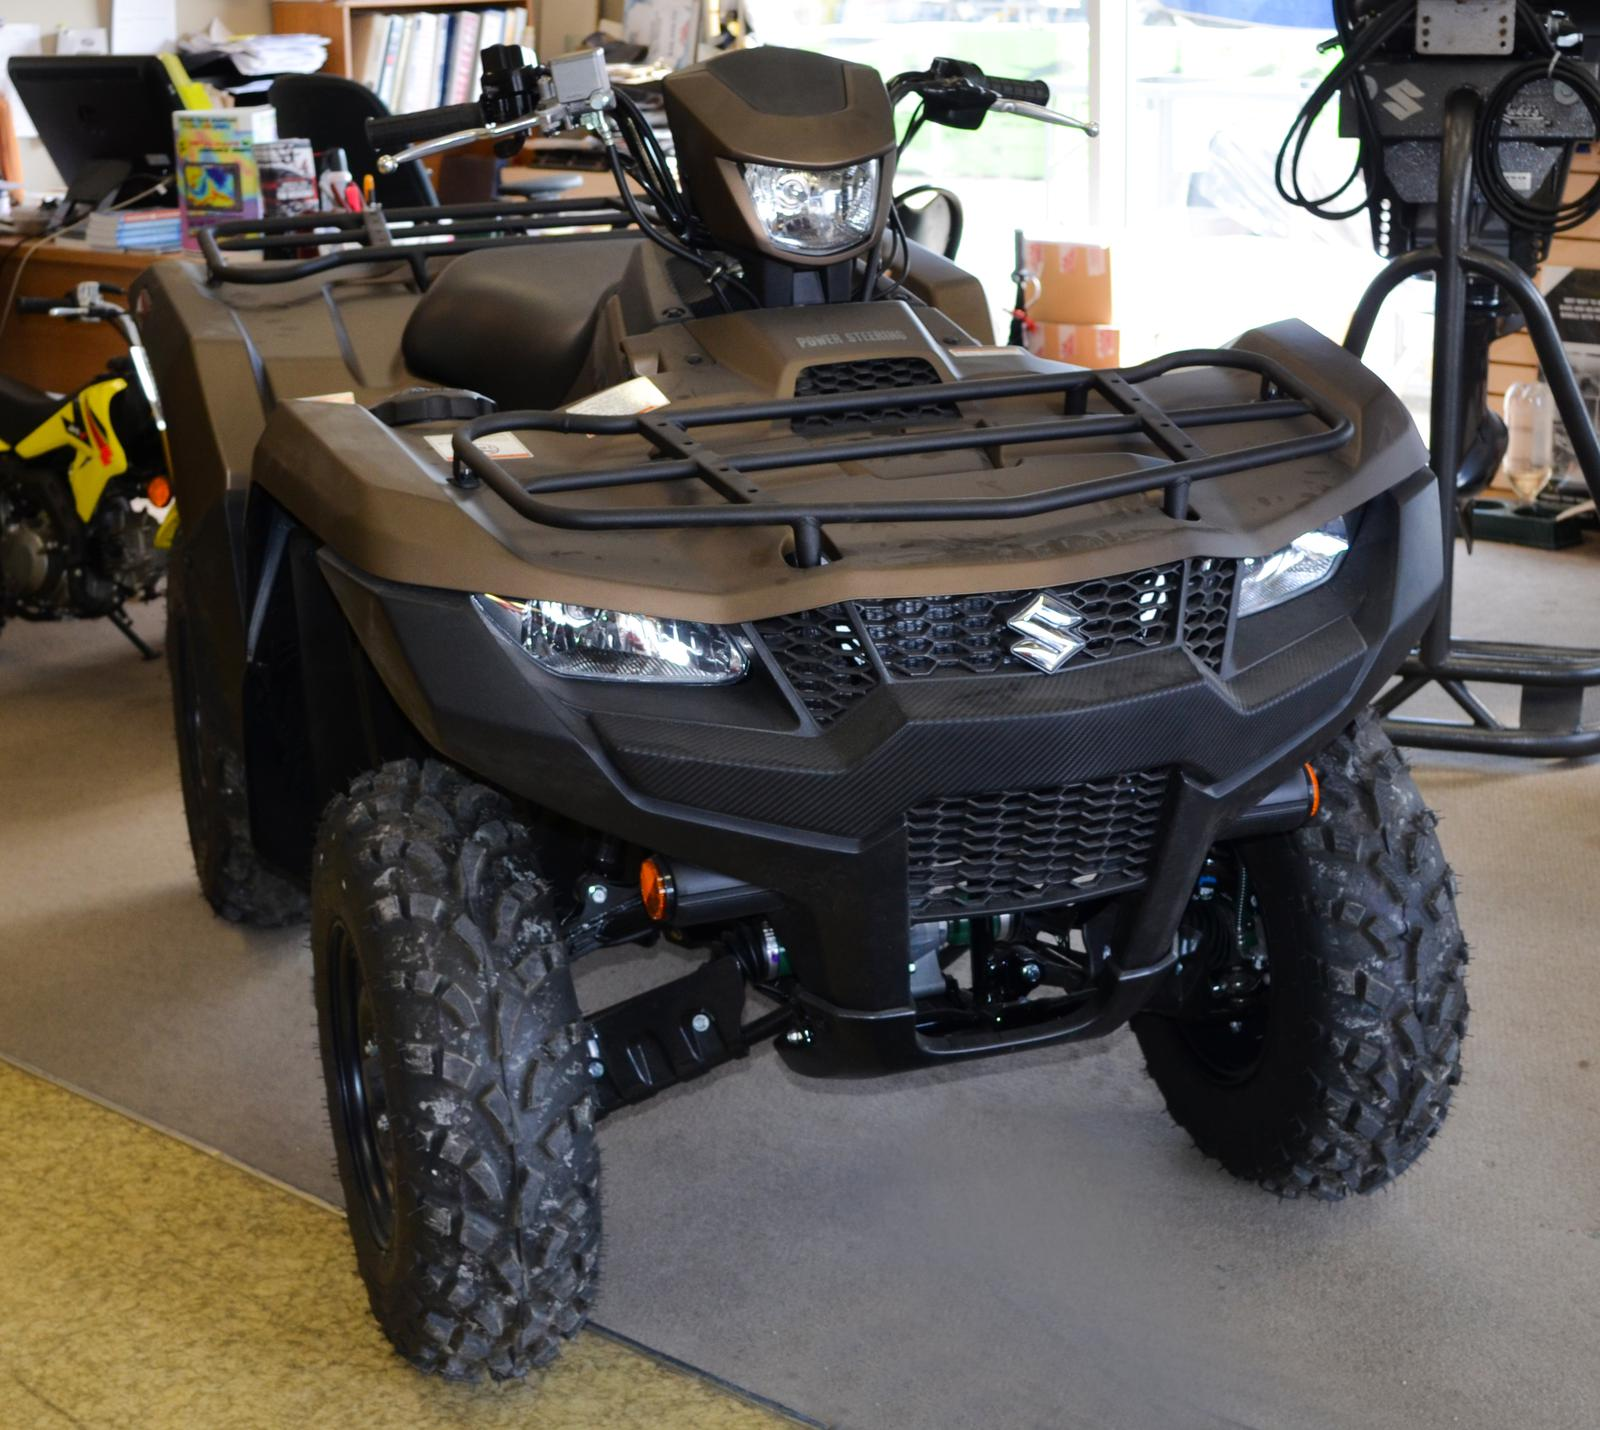 2019 Suzuki KingQuad LT-A500X for sale in Elie, MB  Luke's